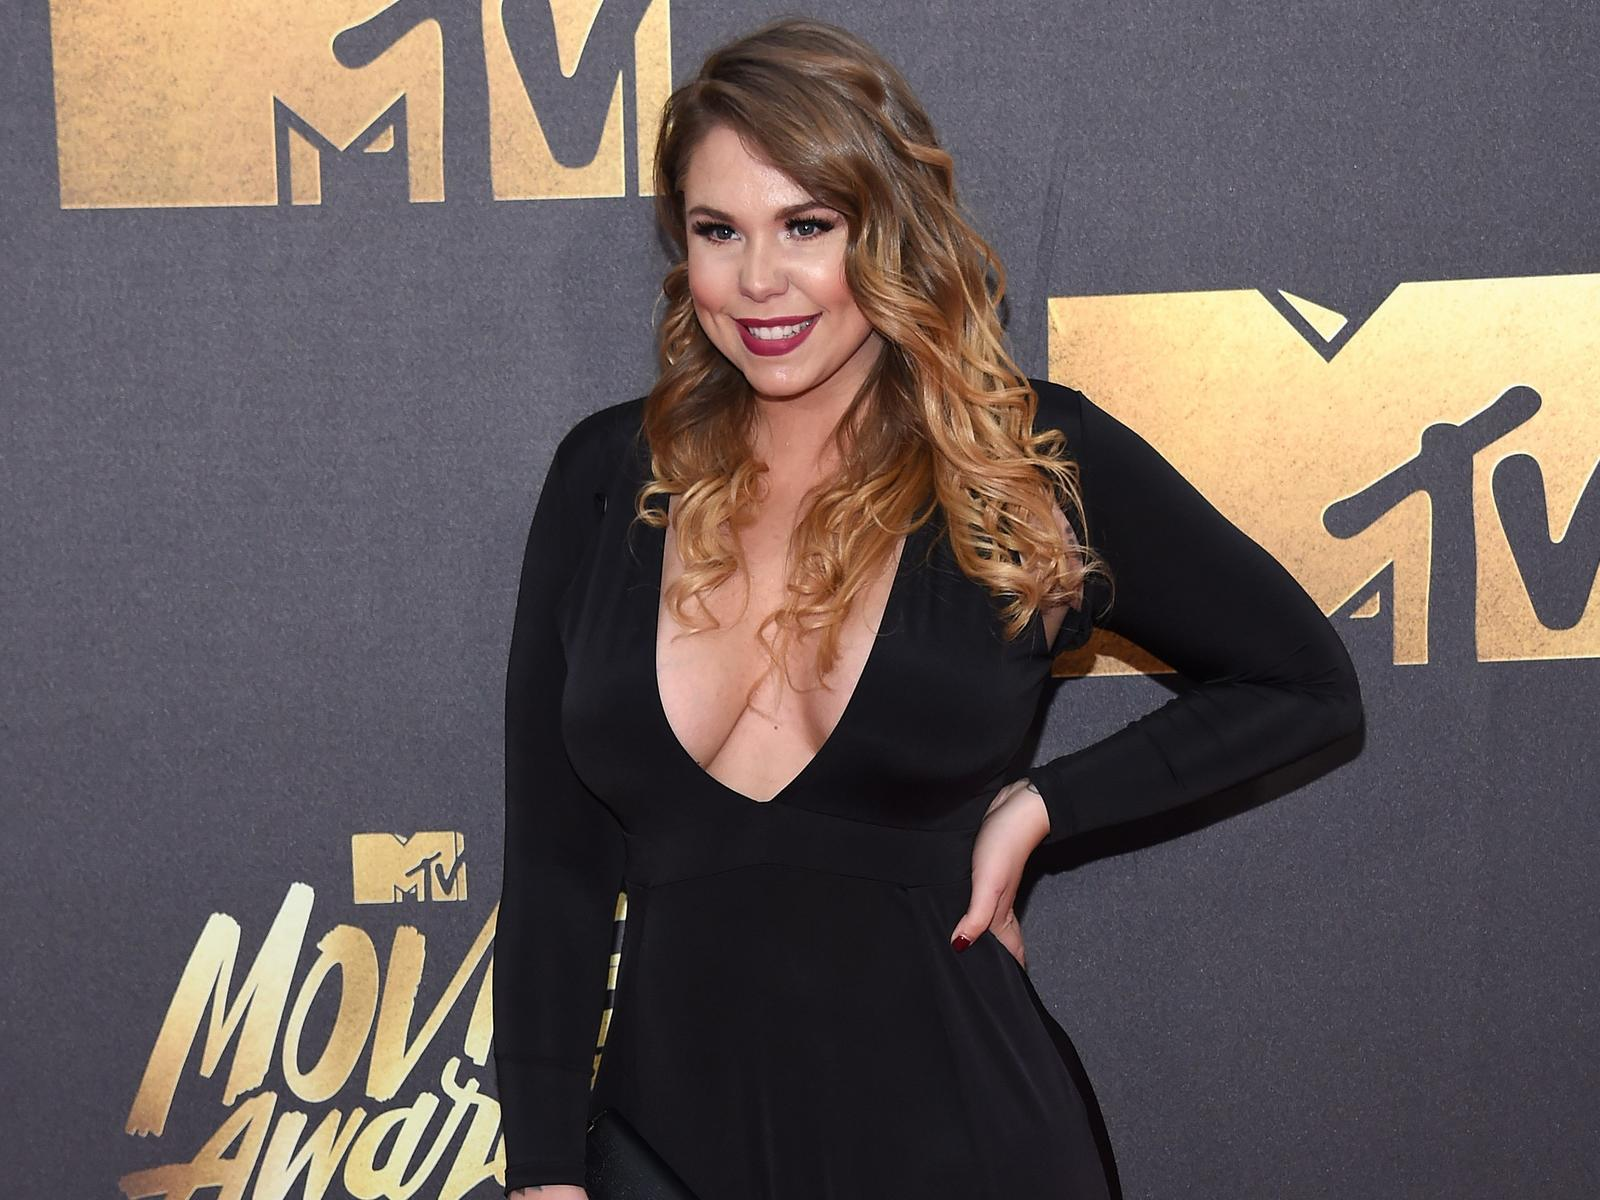 Kailyn Lowry MTV Movie Awards